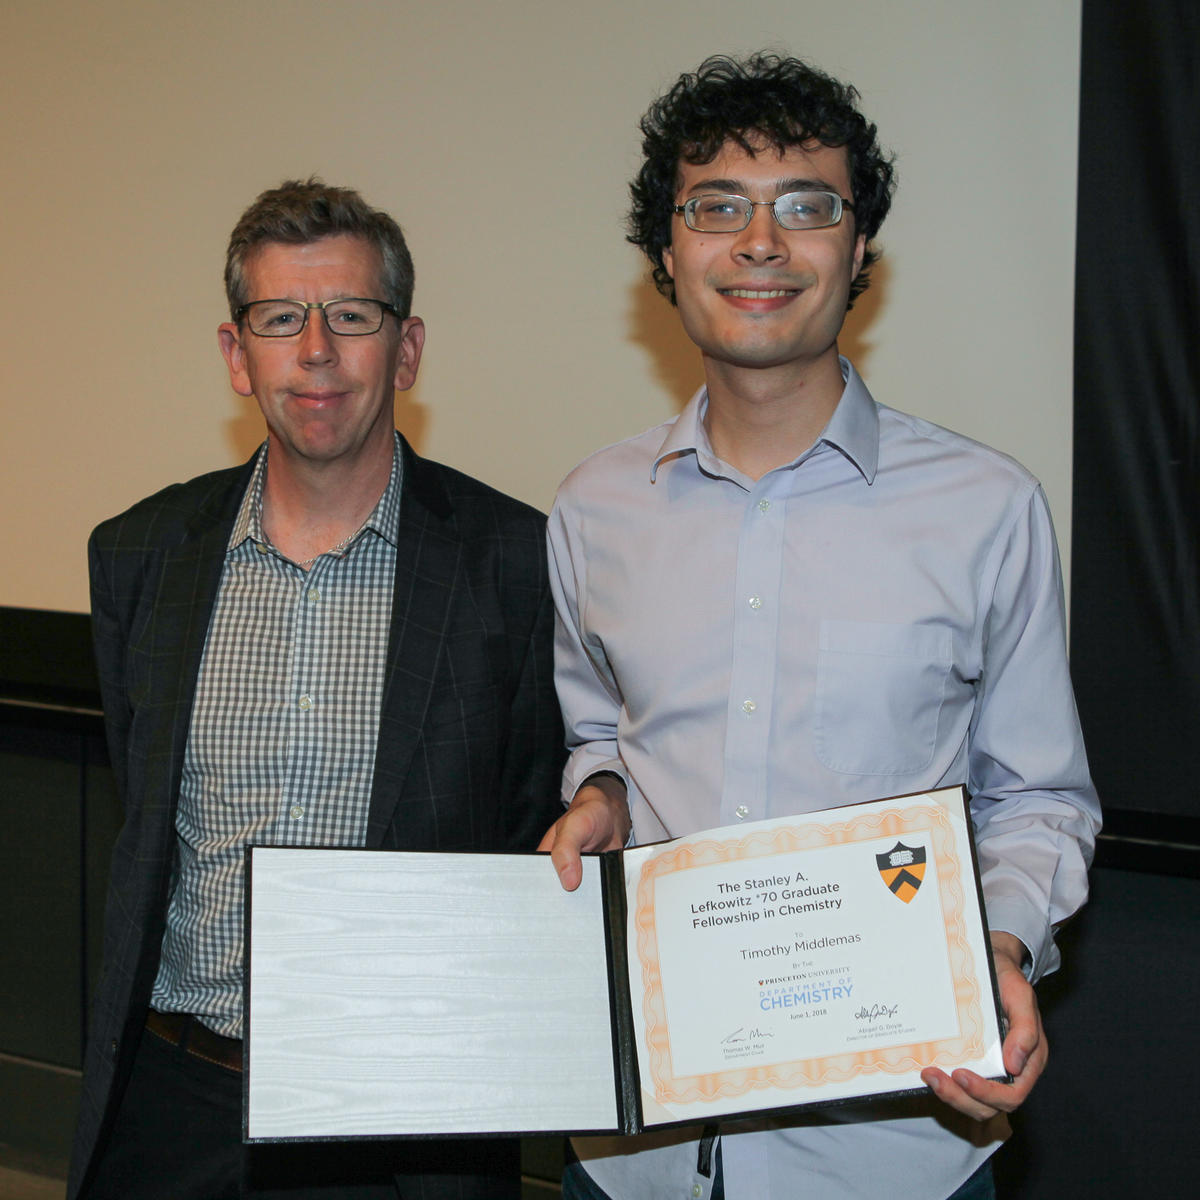 Tom Muir and Timothy Middlemas (Torquato lab), recipient of The Stanley A. Lefkowitz *70 Graduate Fellowship in Chemistry